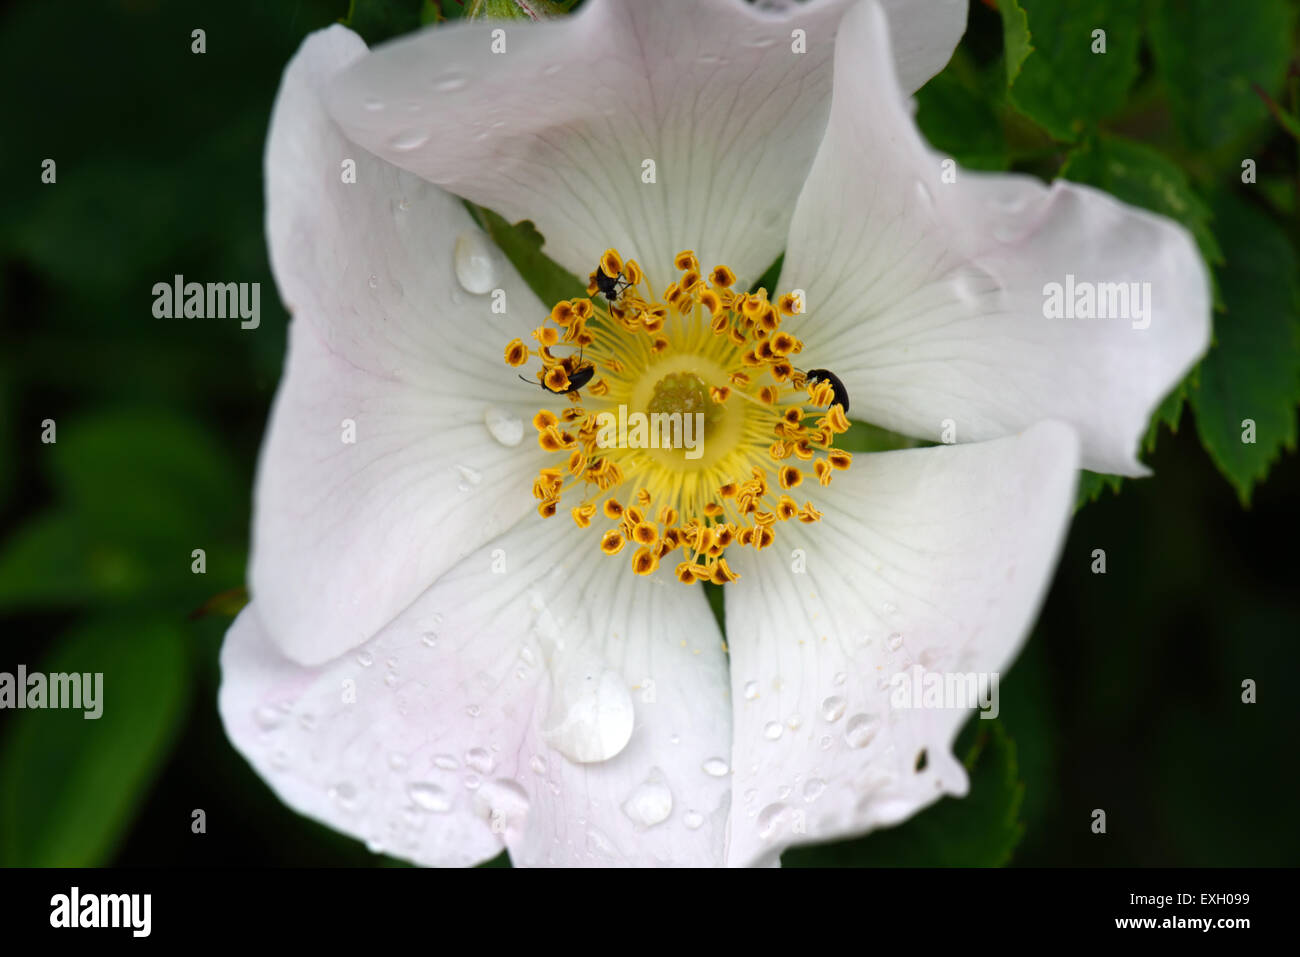 Dog rose, Rosa canina, wild climbing plant with pink and white flowers with raindrops after the rain in summer, Stock Photo